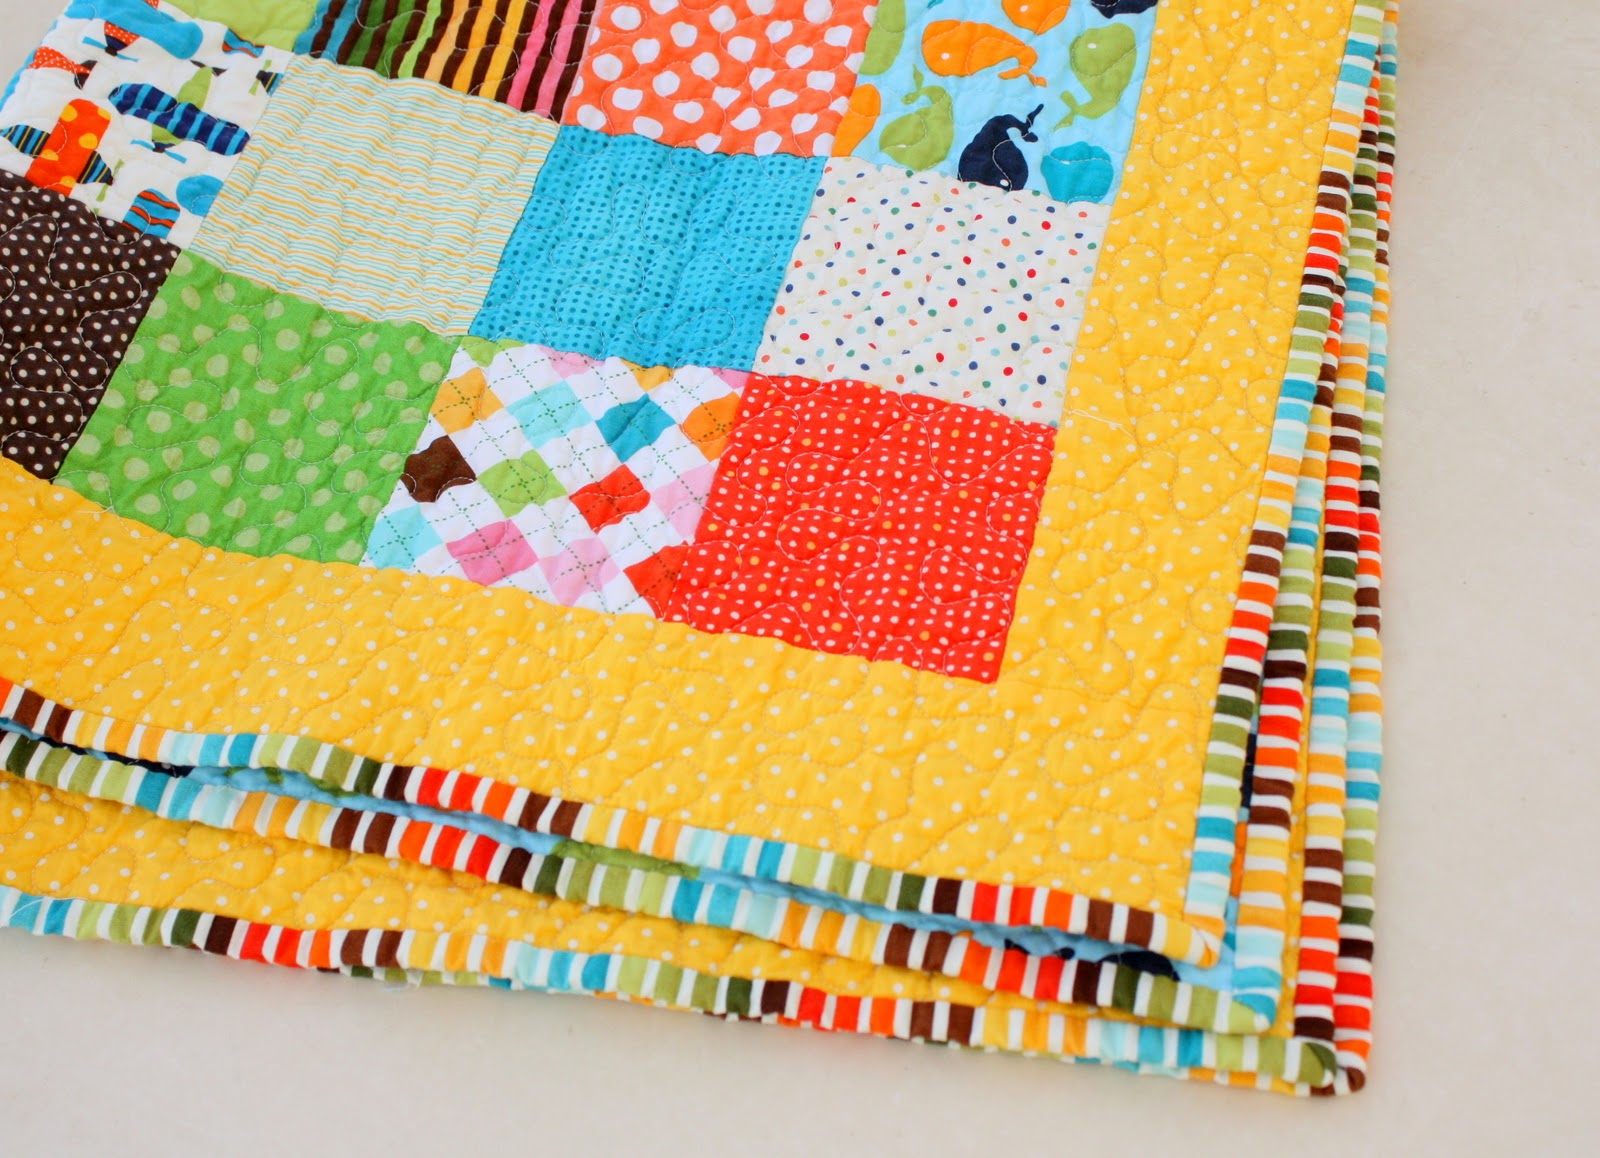 Bright new quilt + baby quilt kits - Diary of a Quilter - a quilt blog : bright quilts - Adamdwight.com